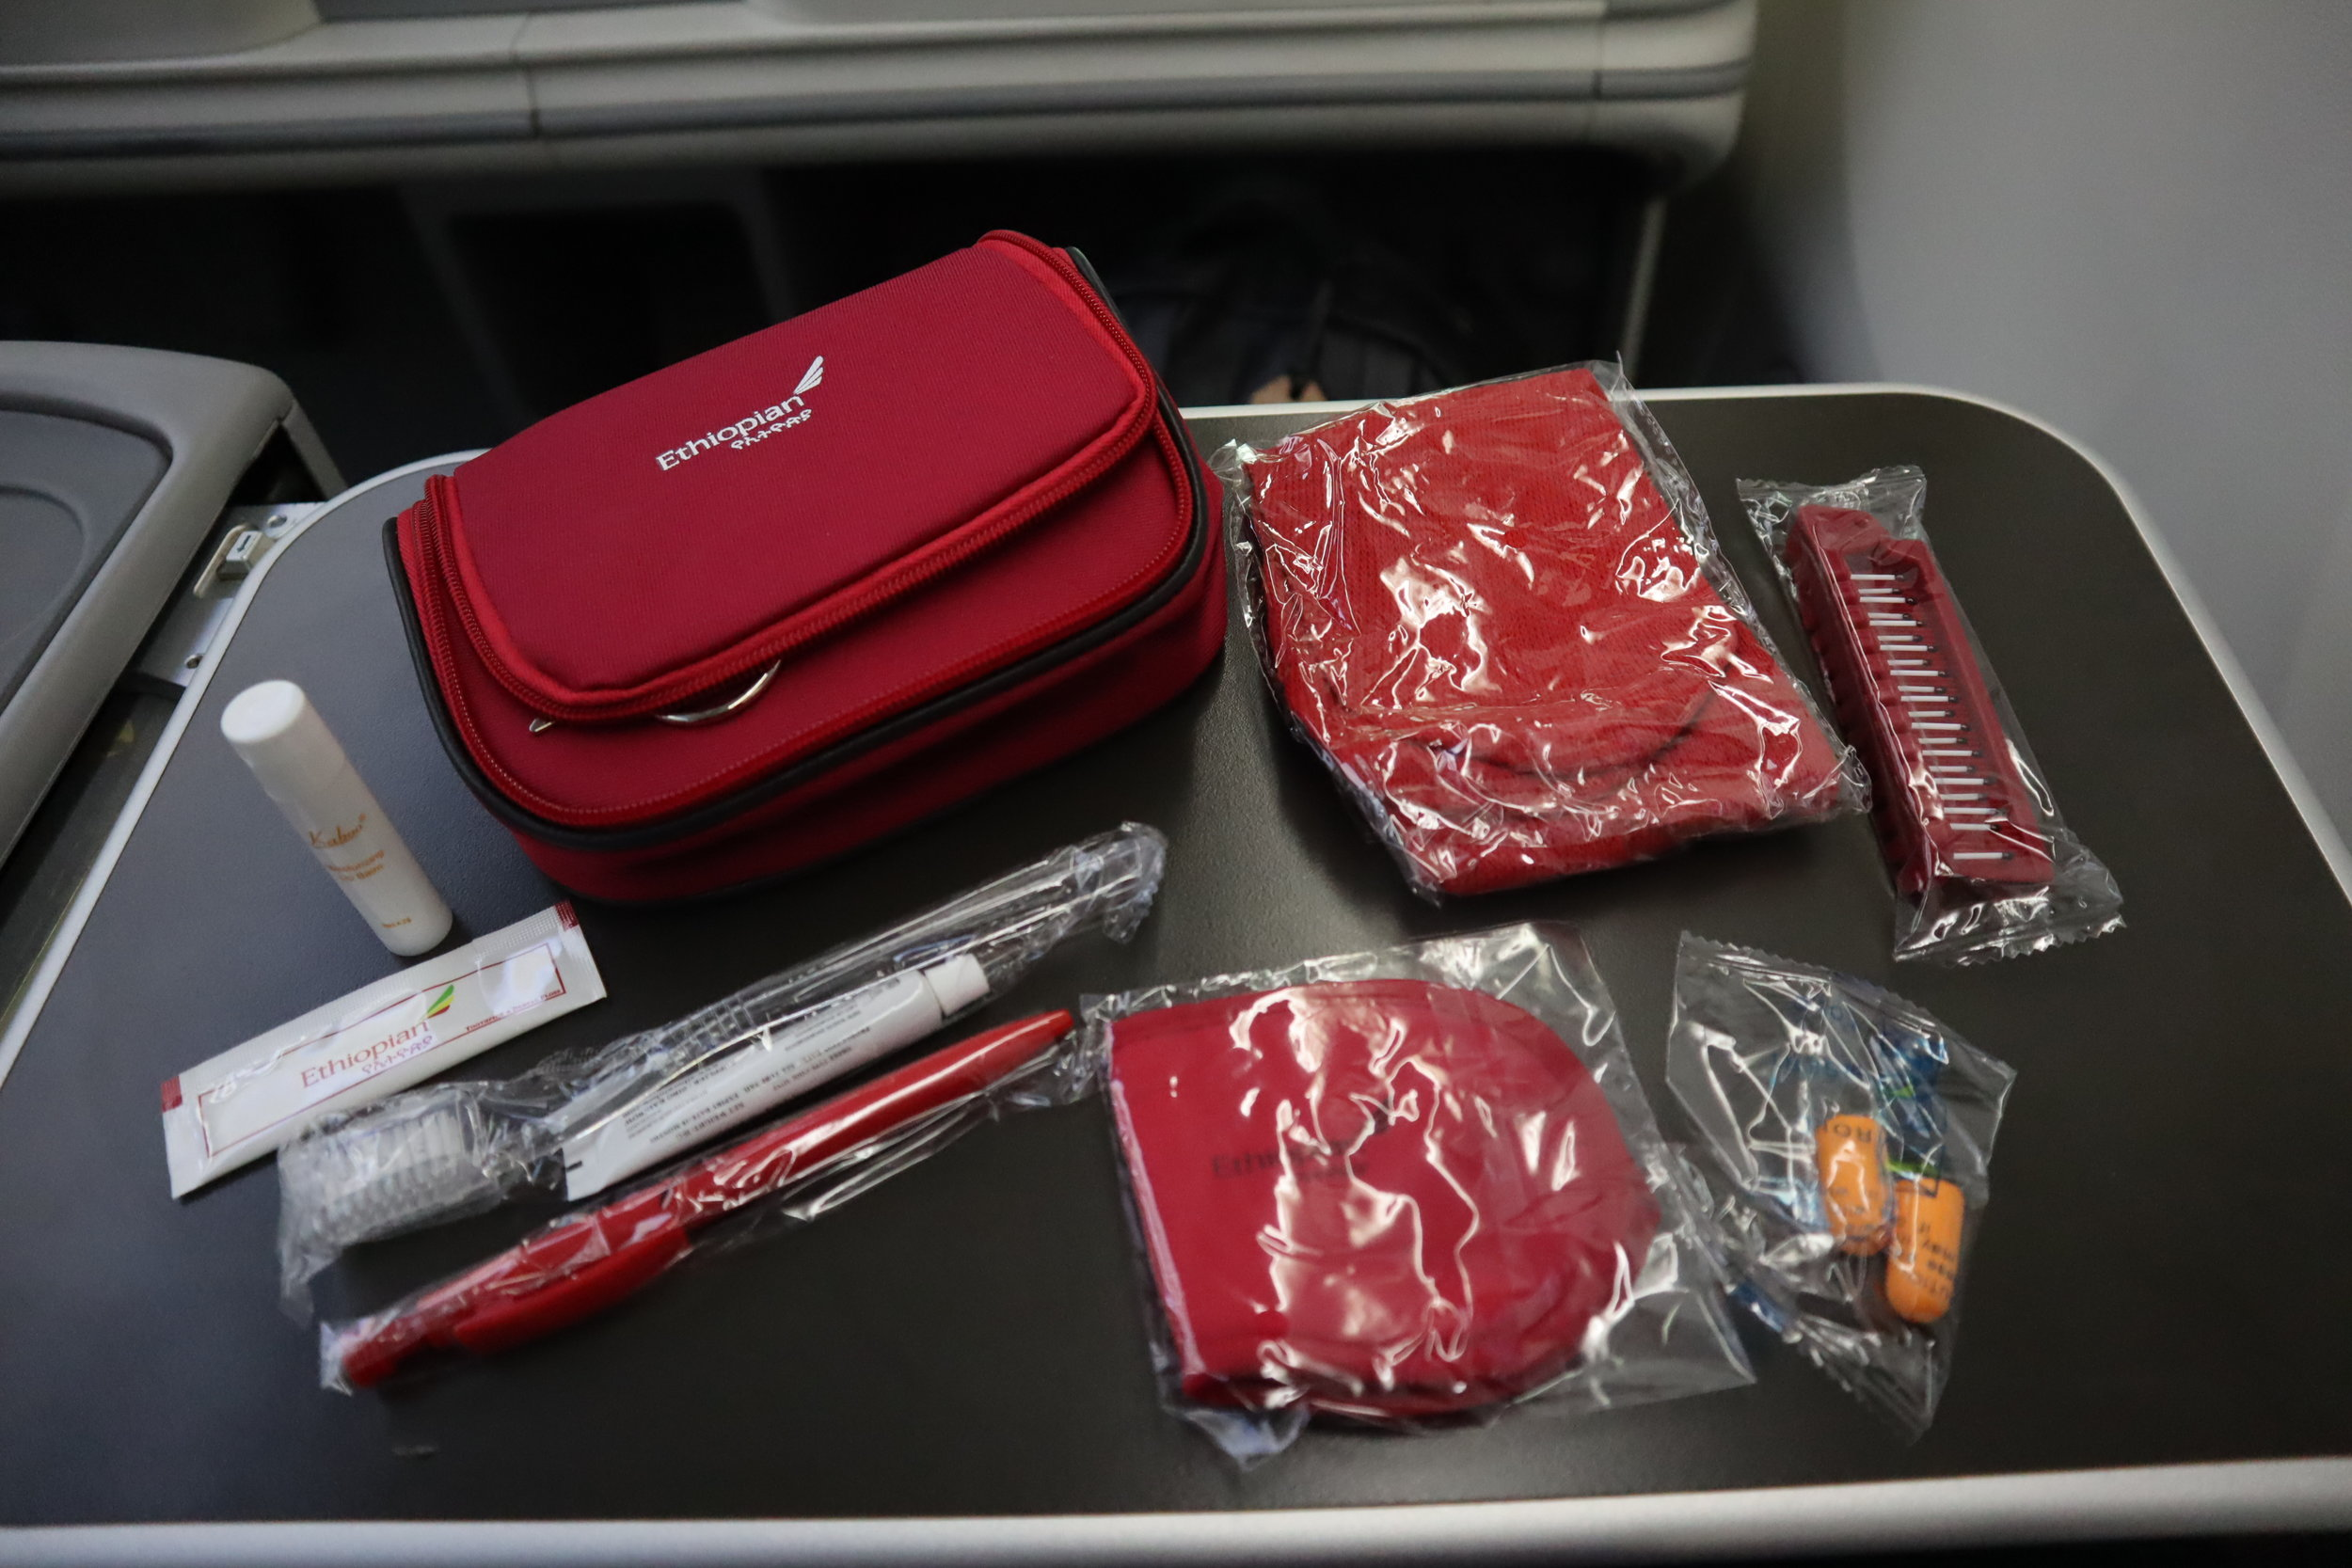 Ethiopian Airlines business class – Amenity kit contents